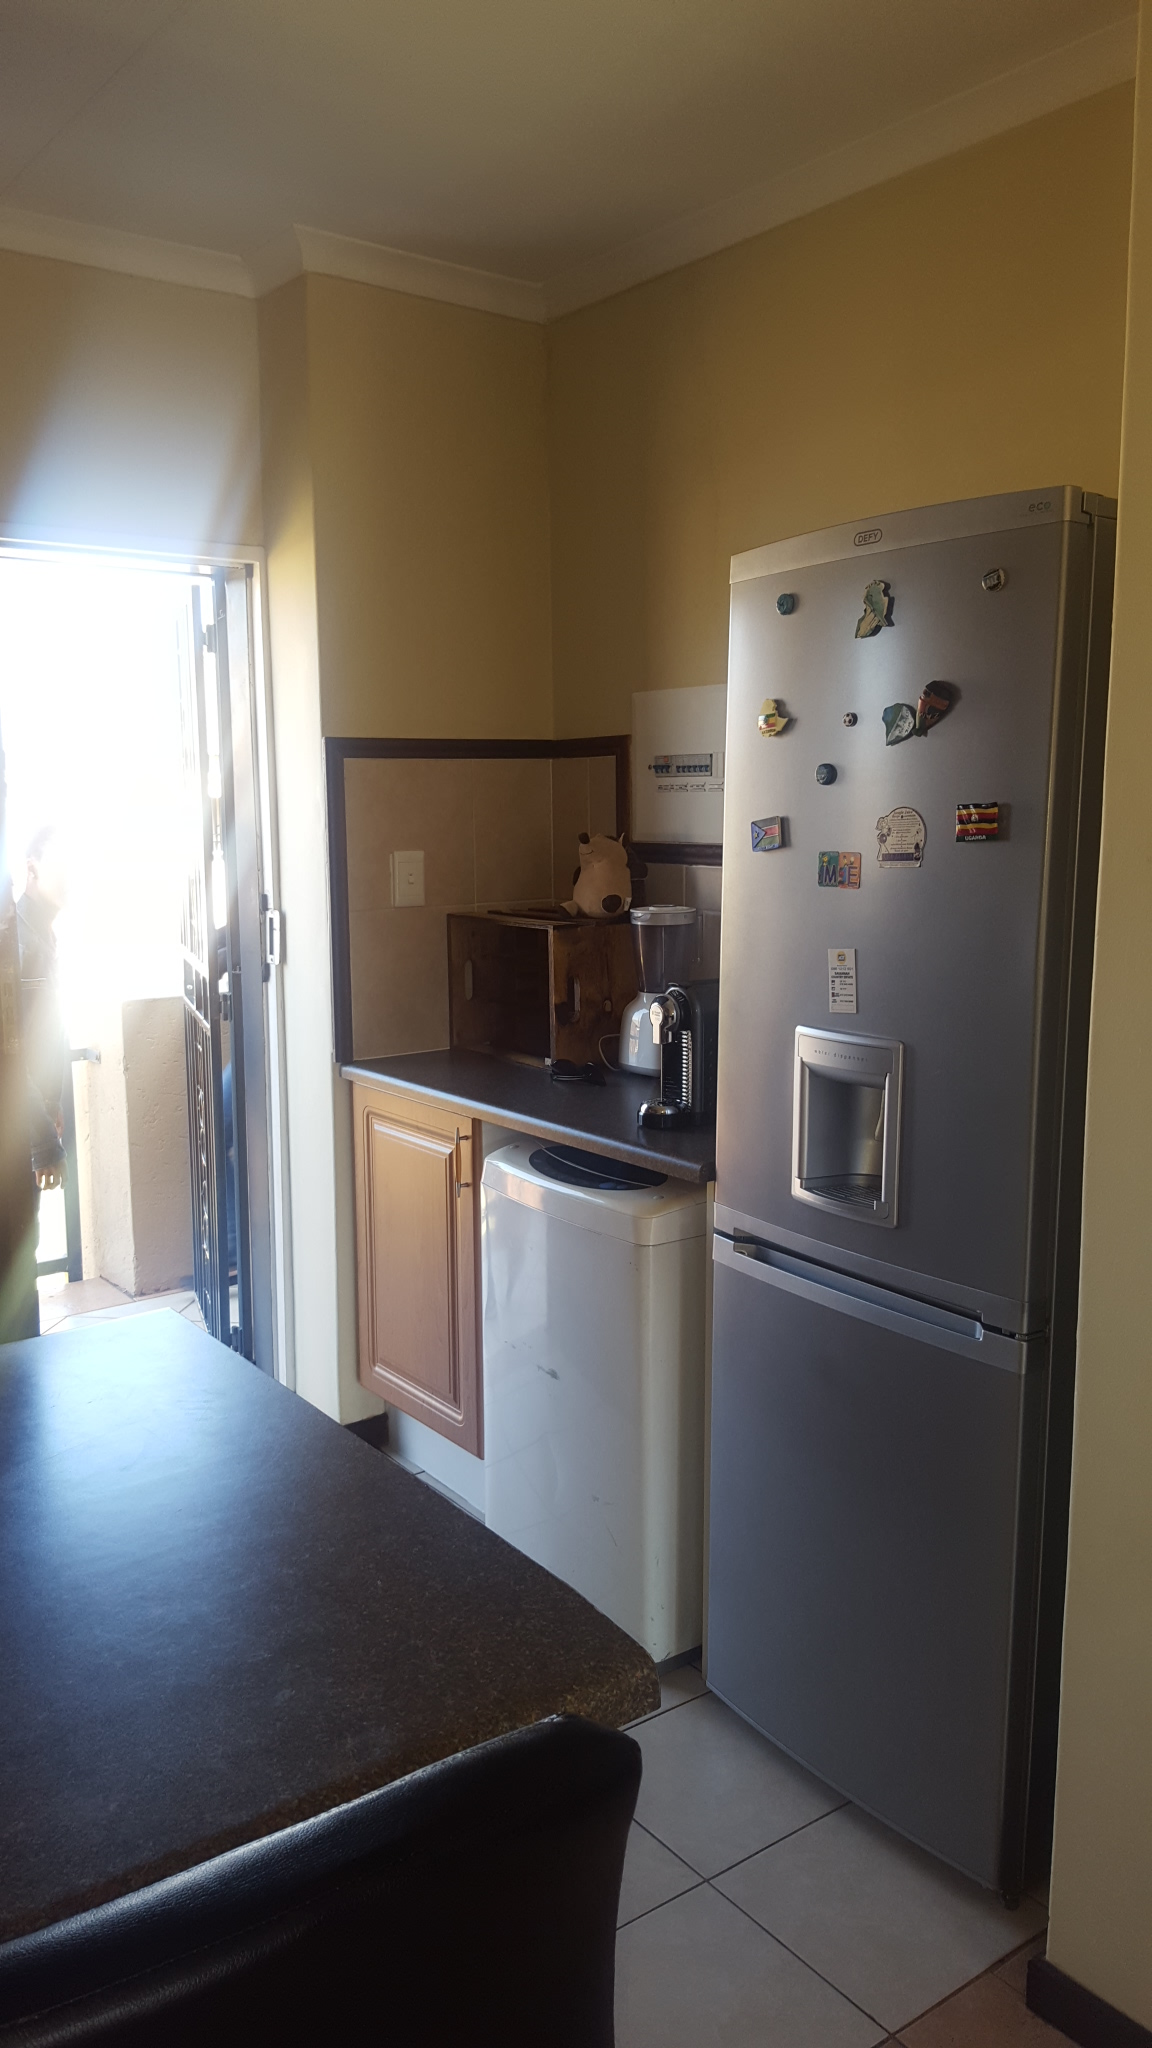 2 Bedroom Townhouse for sale in Mooikloof Ridge ENT0037652 : photo#4